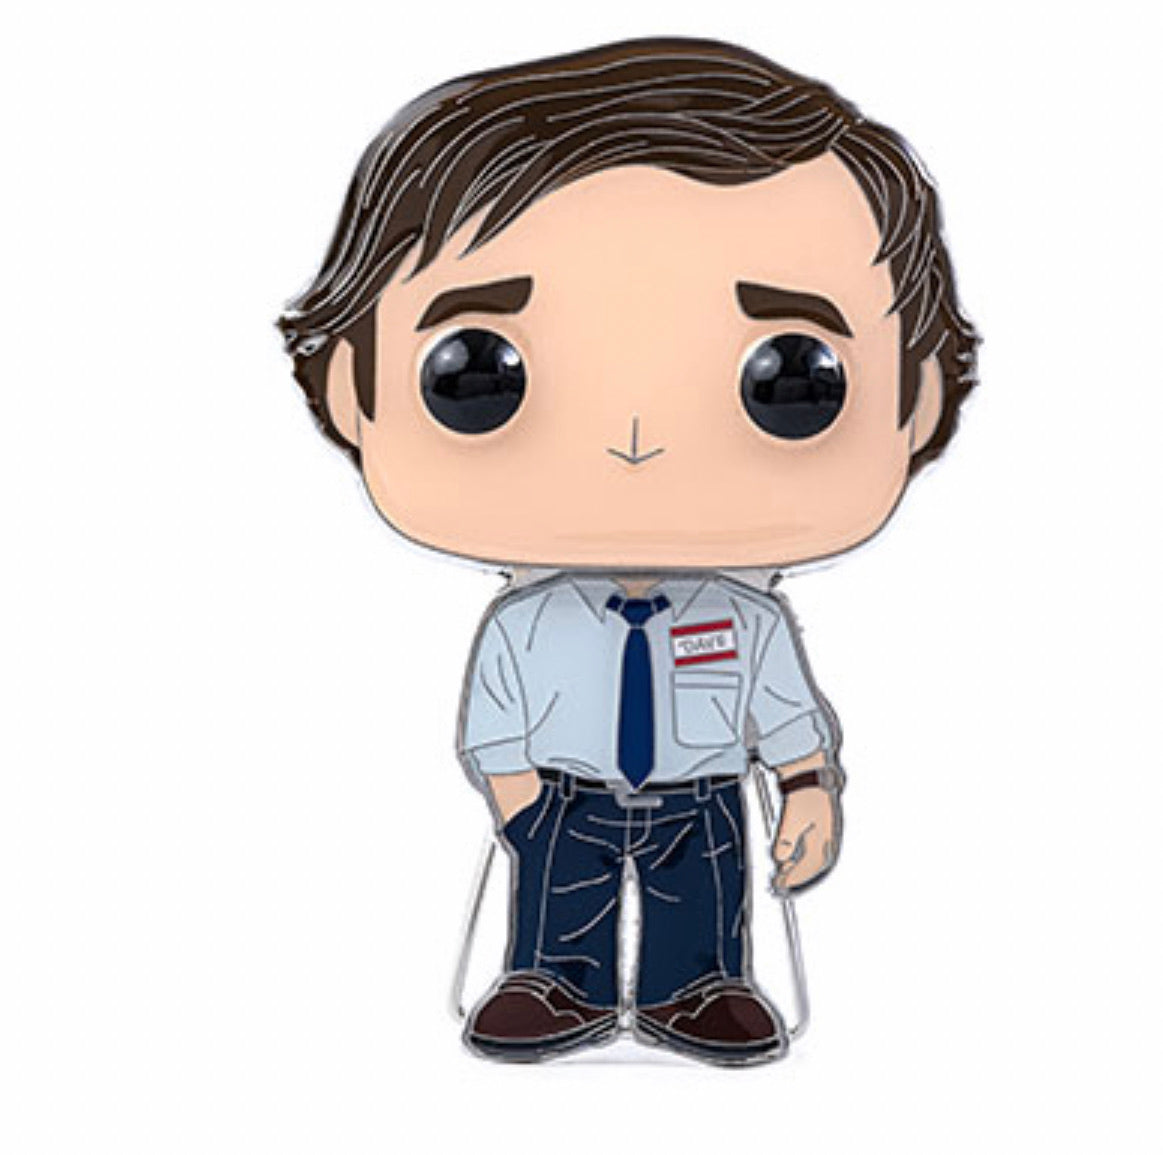 THE OFFICE WAVE 3 - LG ENML PIN (PREORDER)